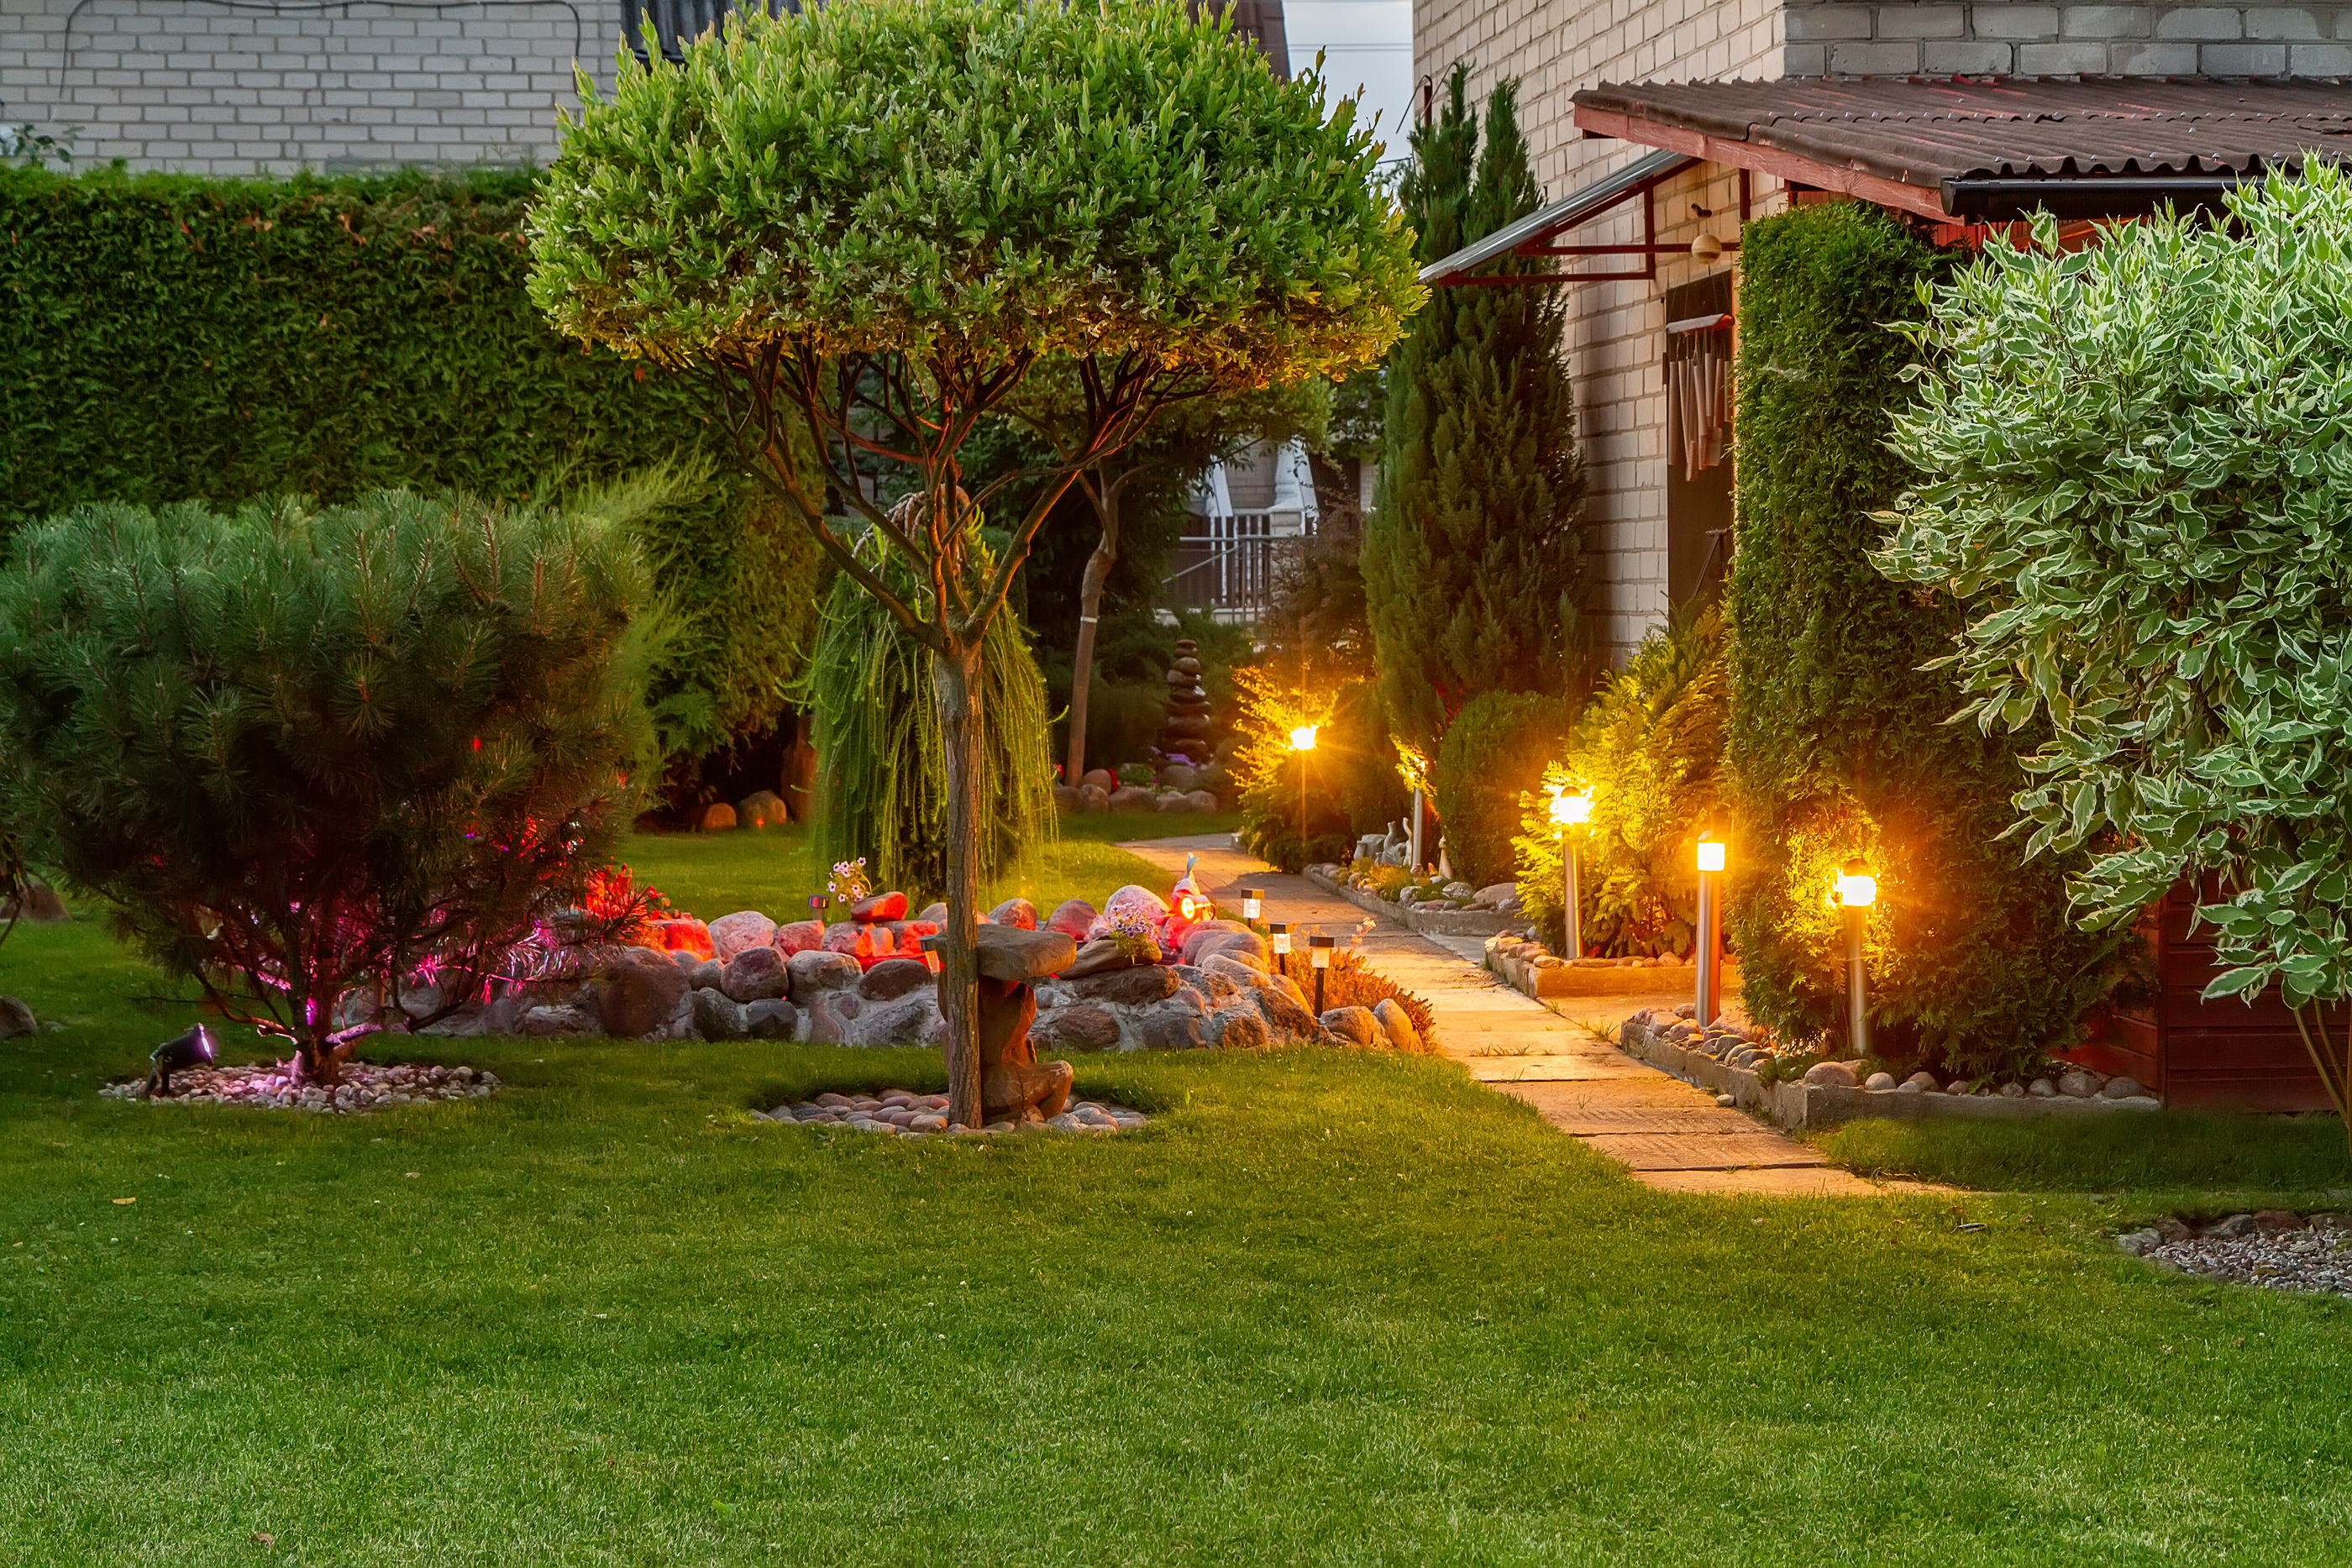 What Are the Latest Trends in Outdoor Lighting?